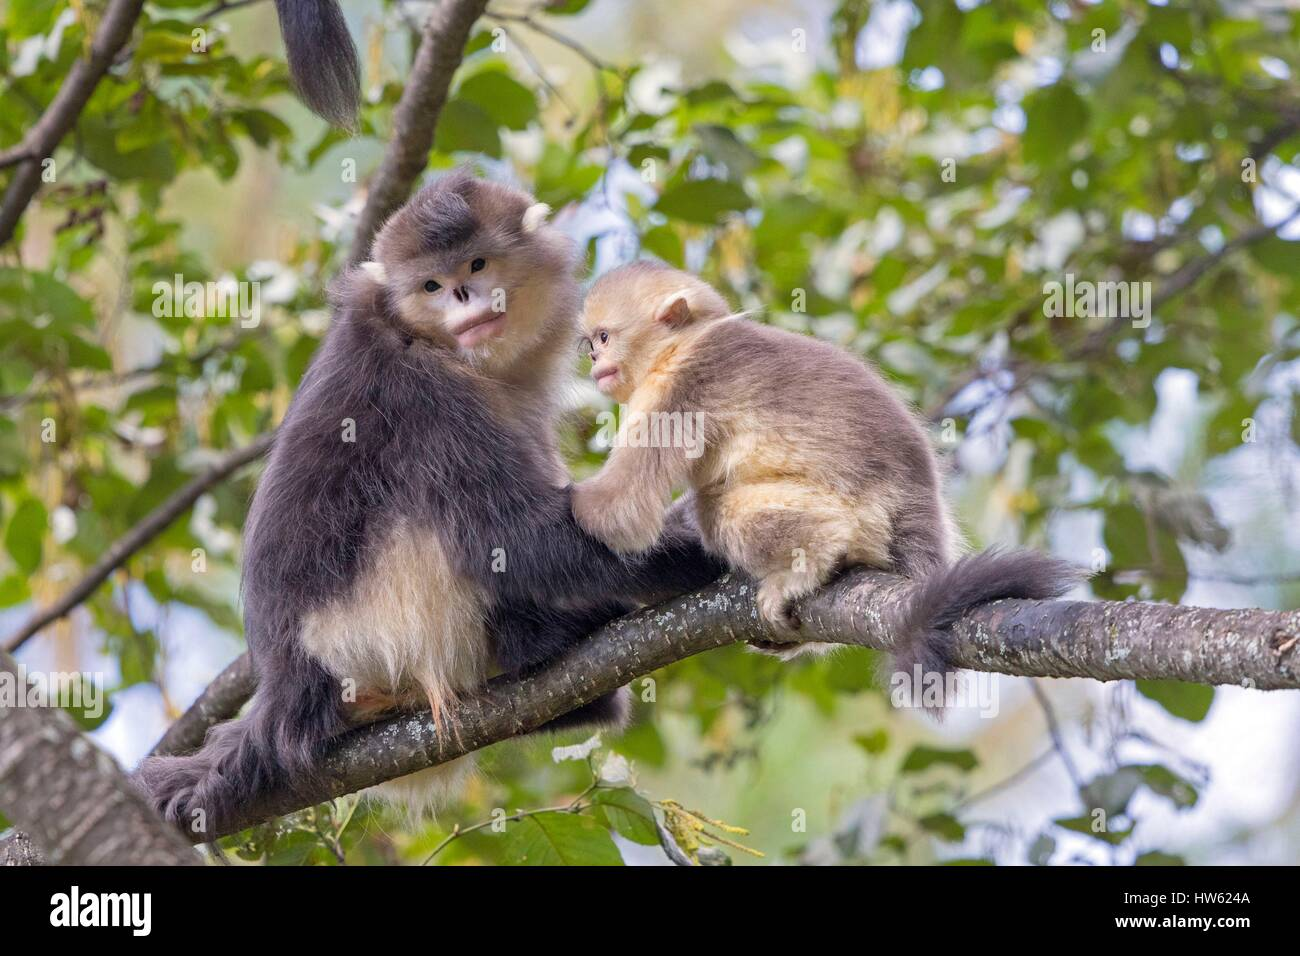 China, Yunnan province, Yunnan Snub-nosed Monkey (Rhinopithecus bieti), mother and baby - Stock Image